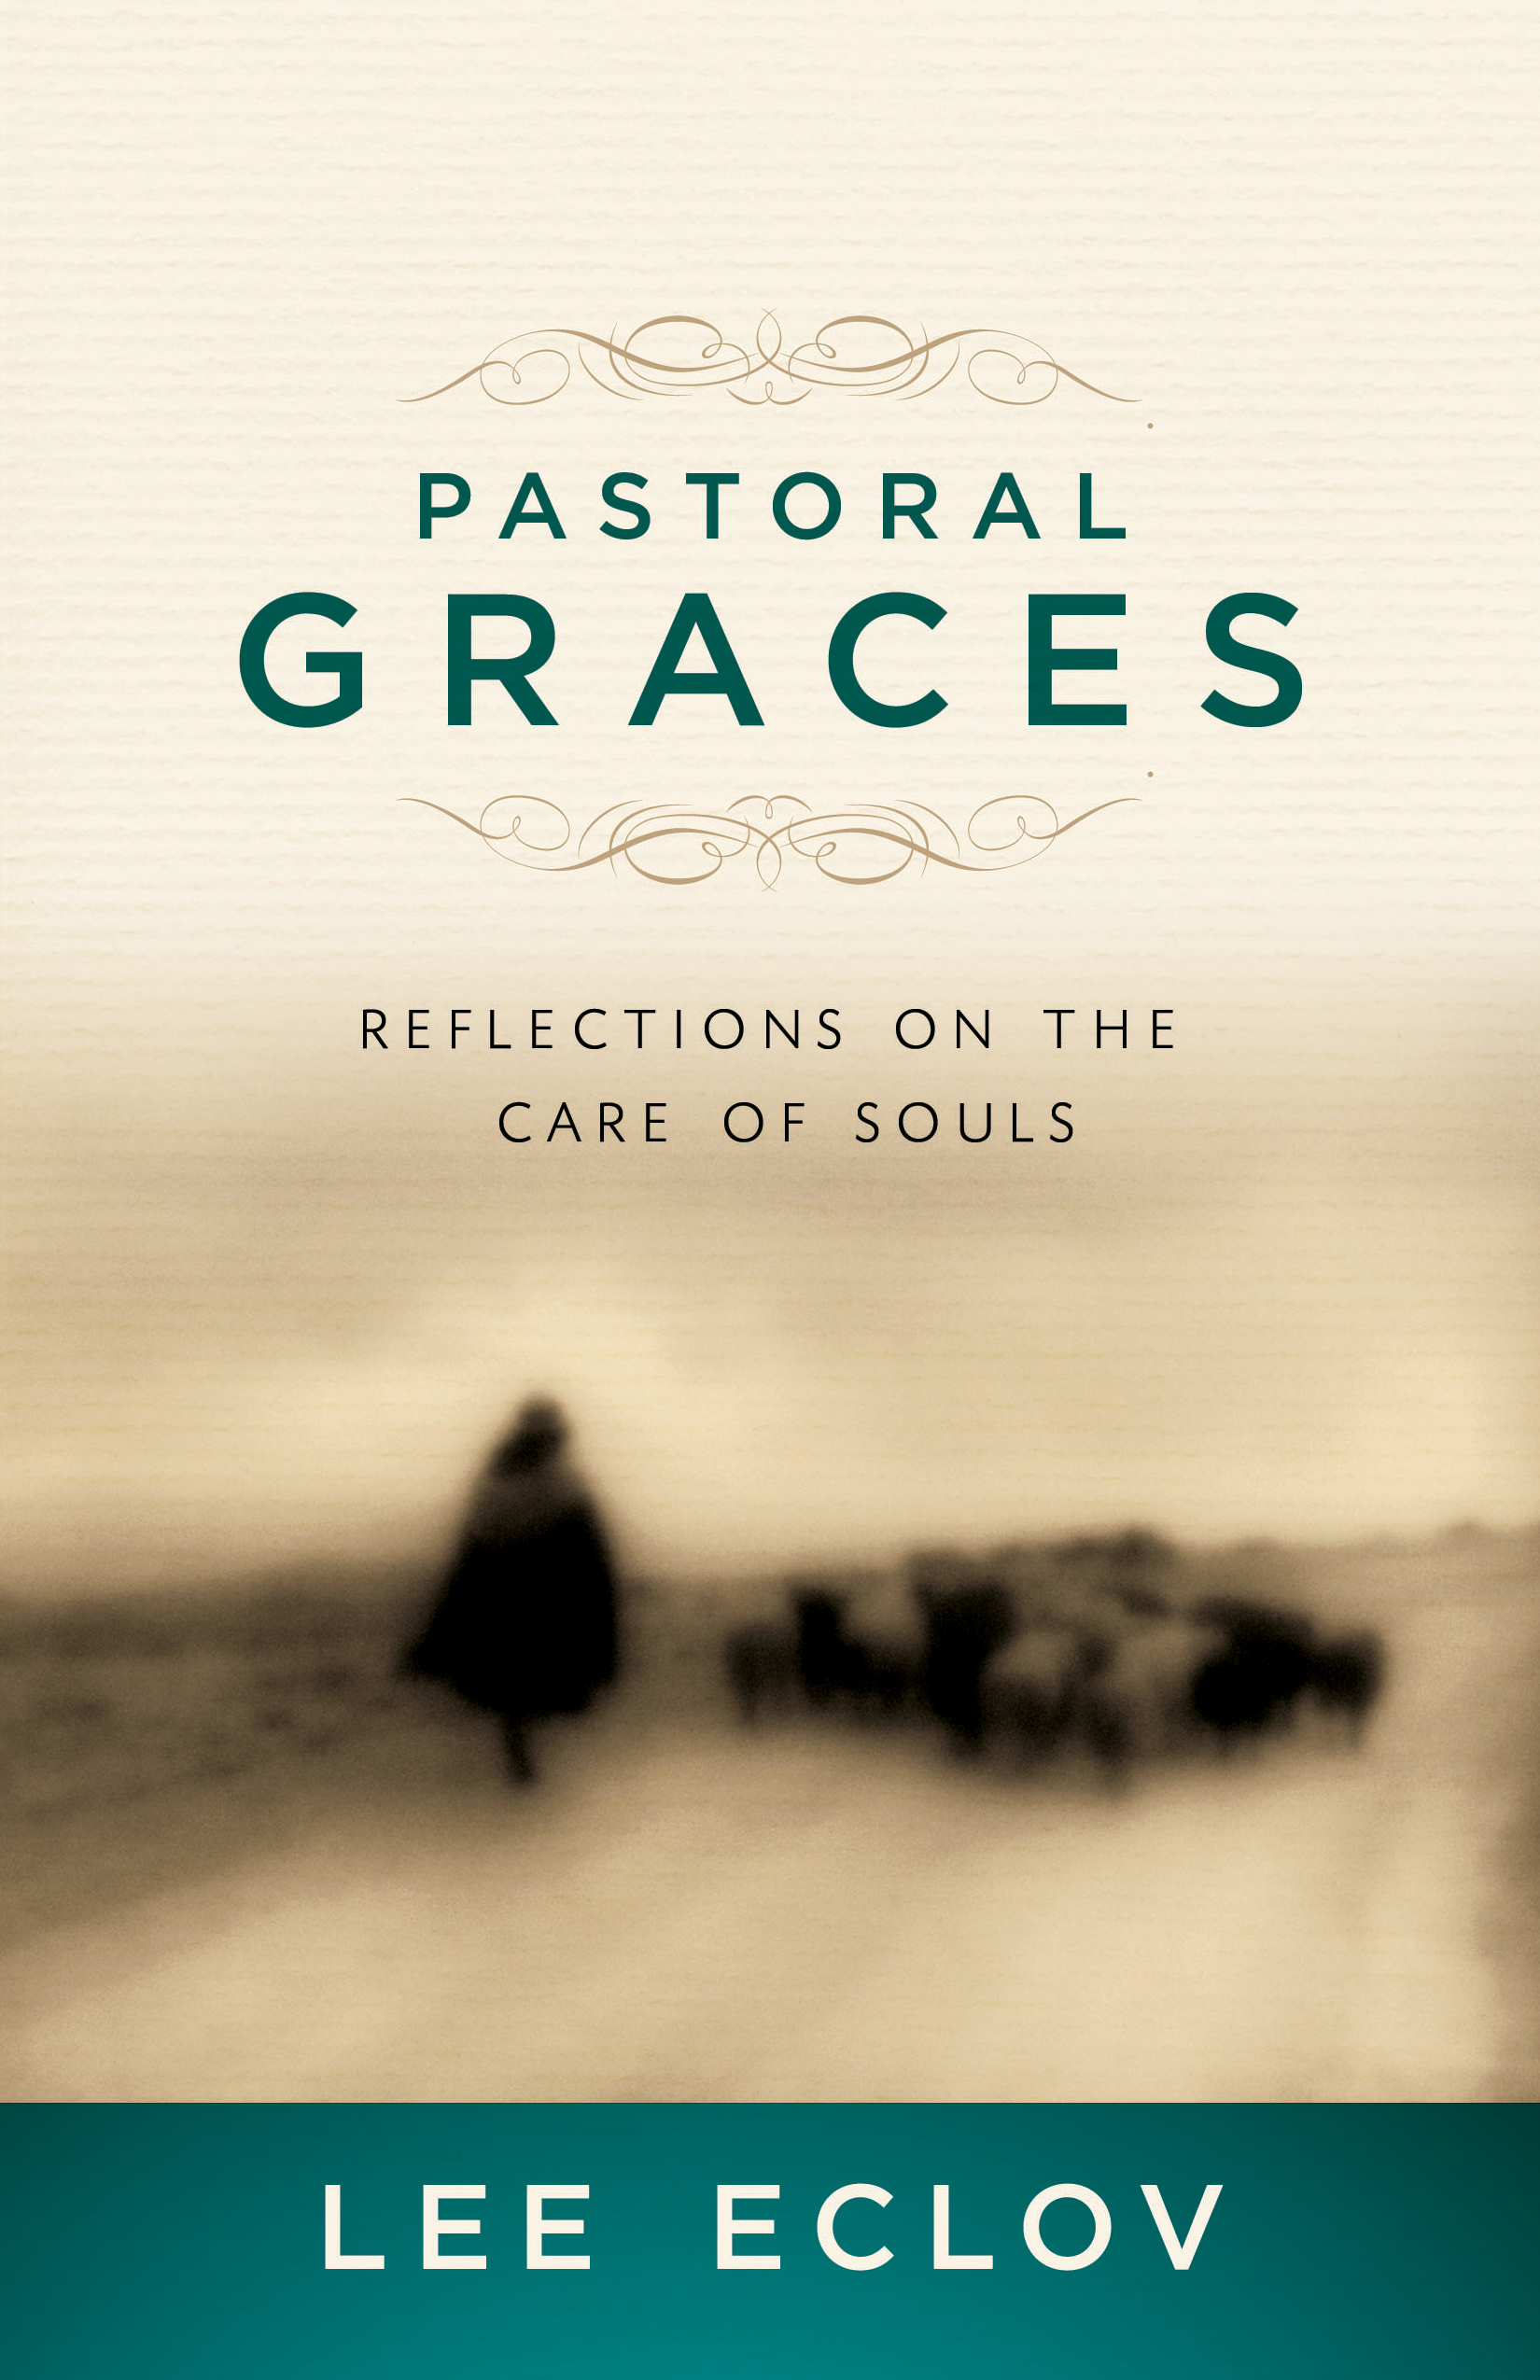 Pastoral Graces SAMPLER: Reflections On the Care of Souls